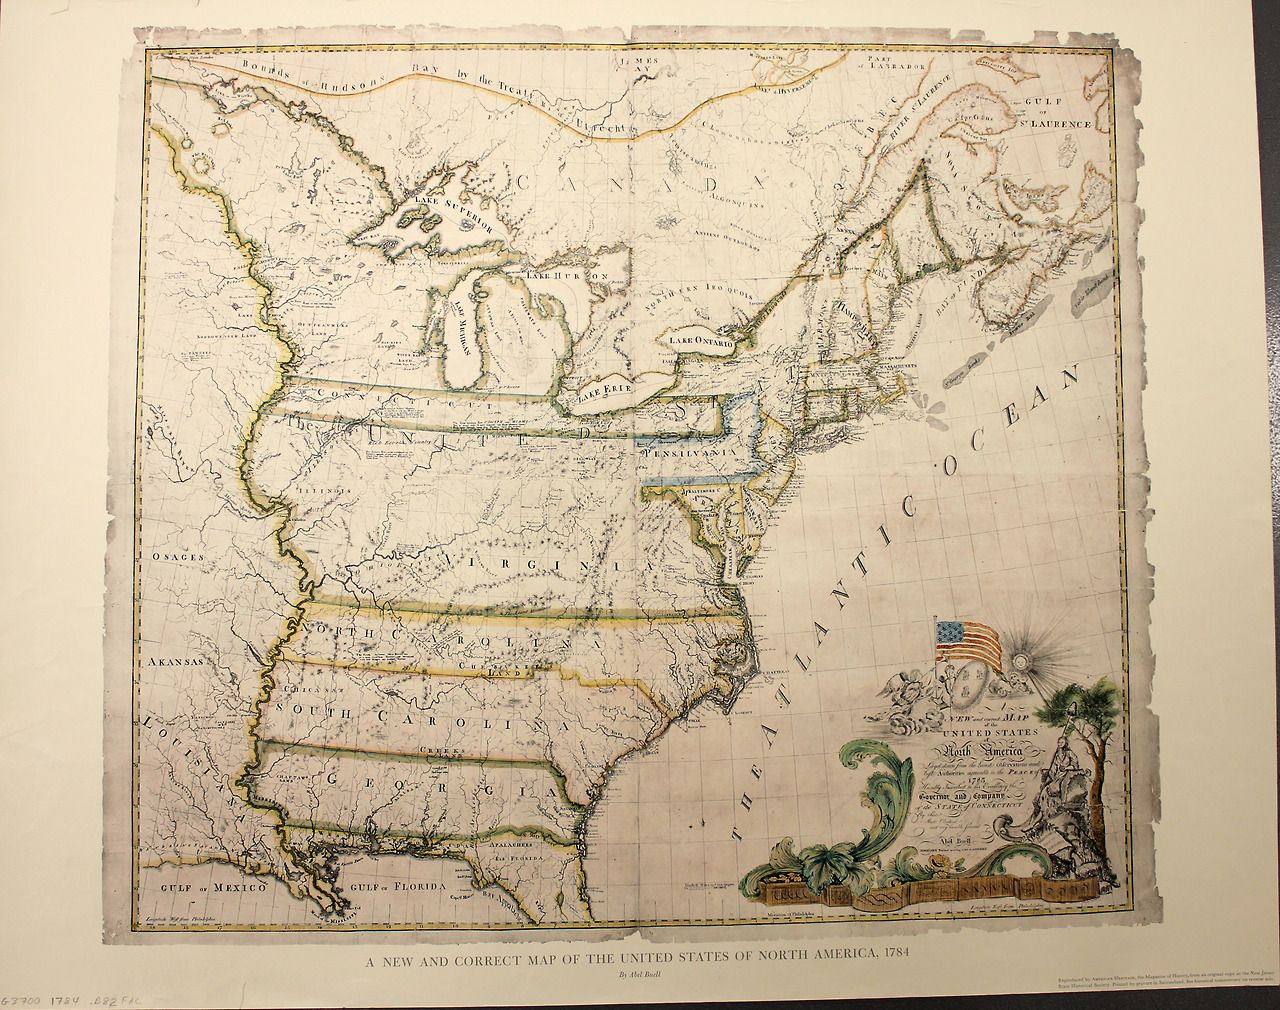 Q4 Revolutionary War January 14  1784  Ratification Day  The         Correct Map of the United States of North America Layd Down from the  Latest Observations and Best Authorities Agreeable to the Peace of 1783   Geography